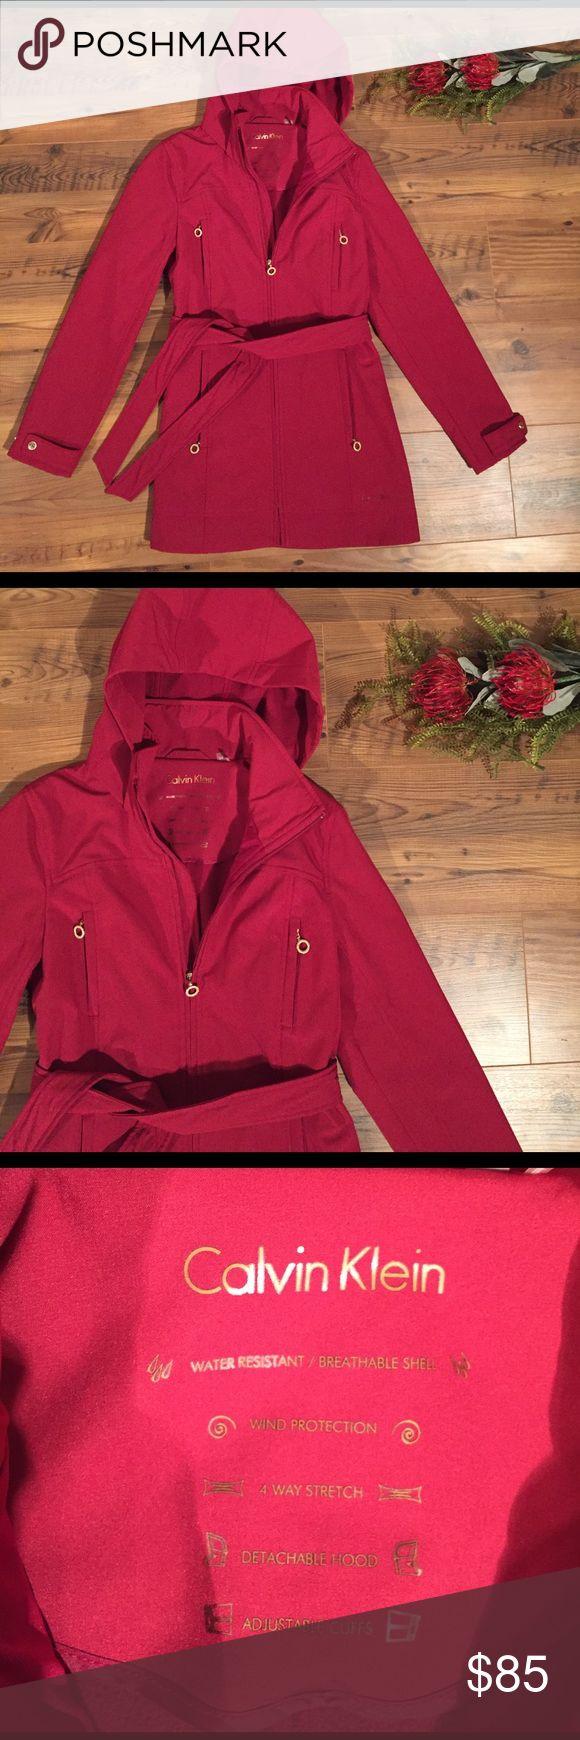 Calvin Klein women's rain jacket hood XS PINK Calvin Klein women's rain jacket hood XS PINK water resistant, wind protections, 4 way stretch, detachable hood, adjustable cuffs EUC, no signs of wear Calvin Klein Jackets & Coats